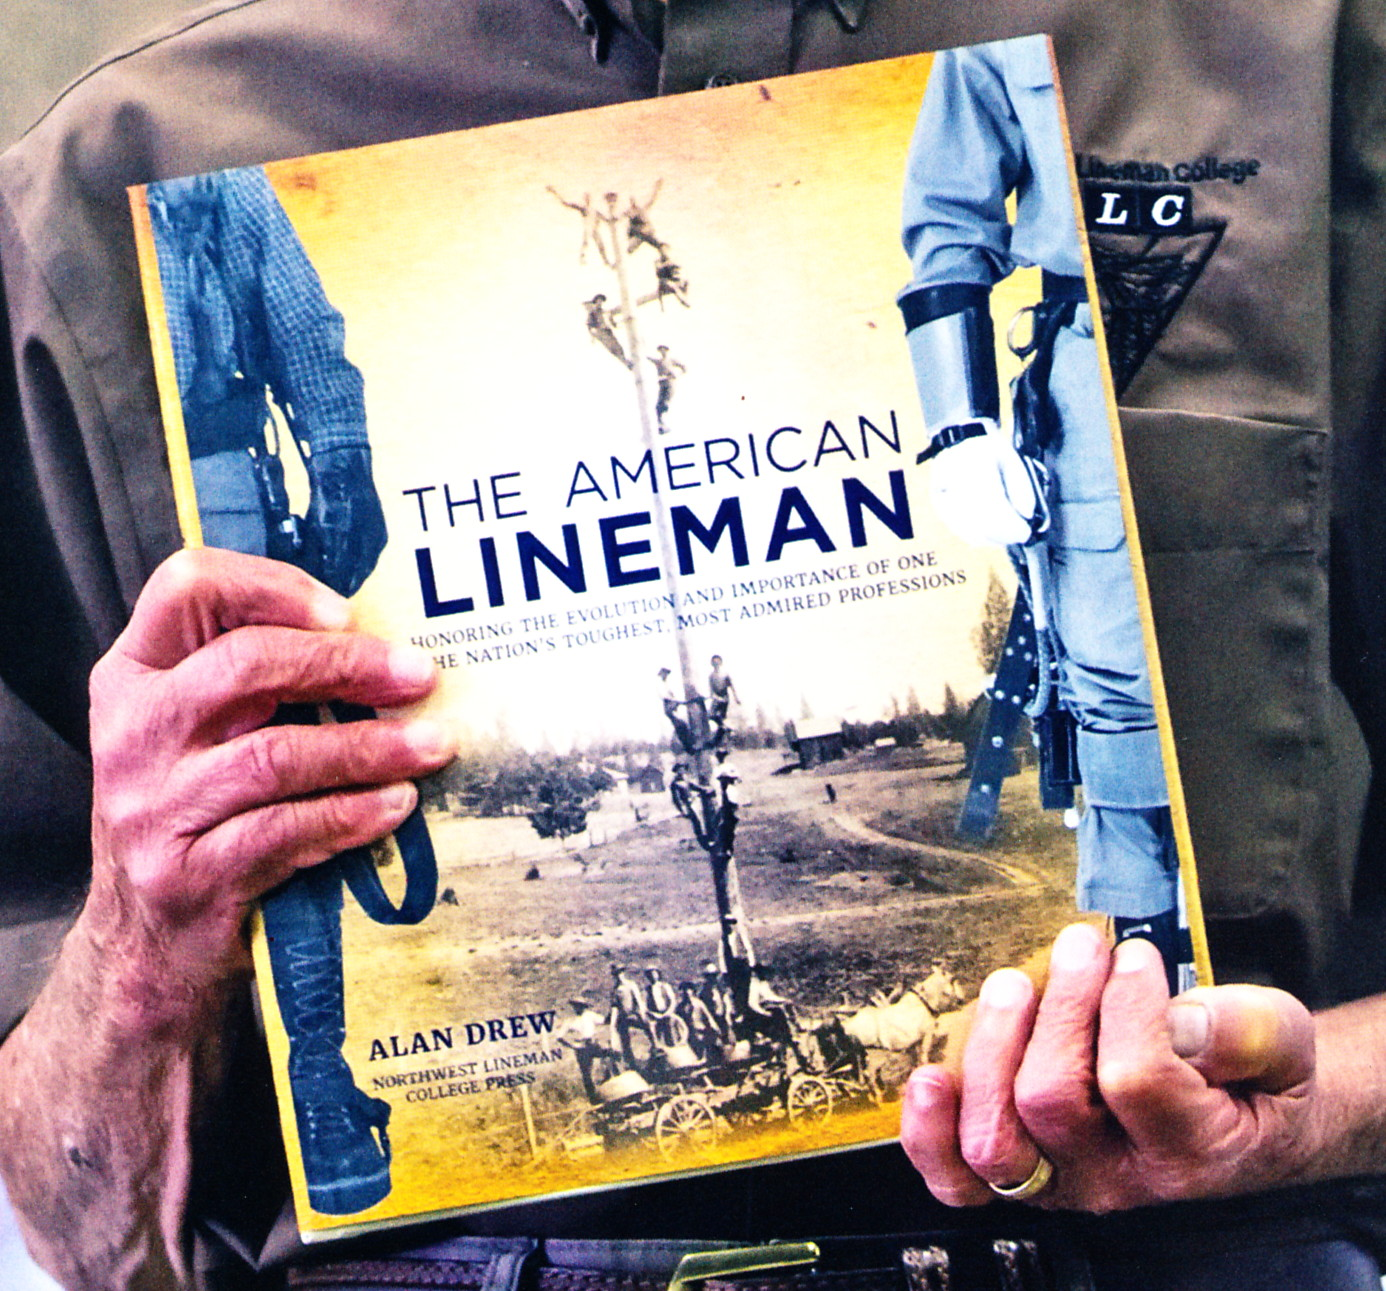 Alan Drew Holding His Book